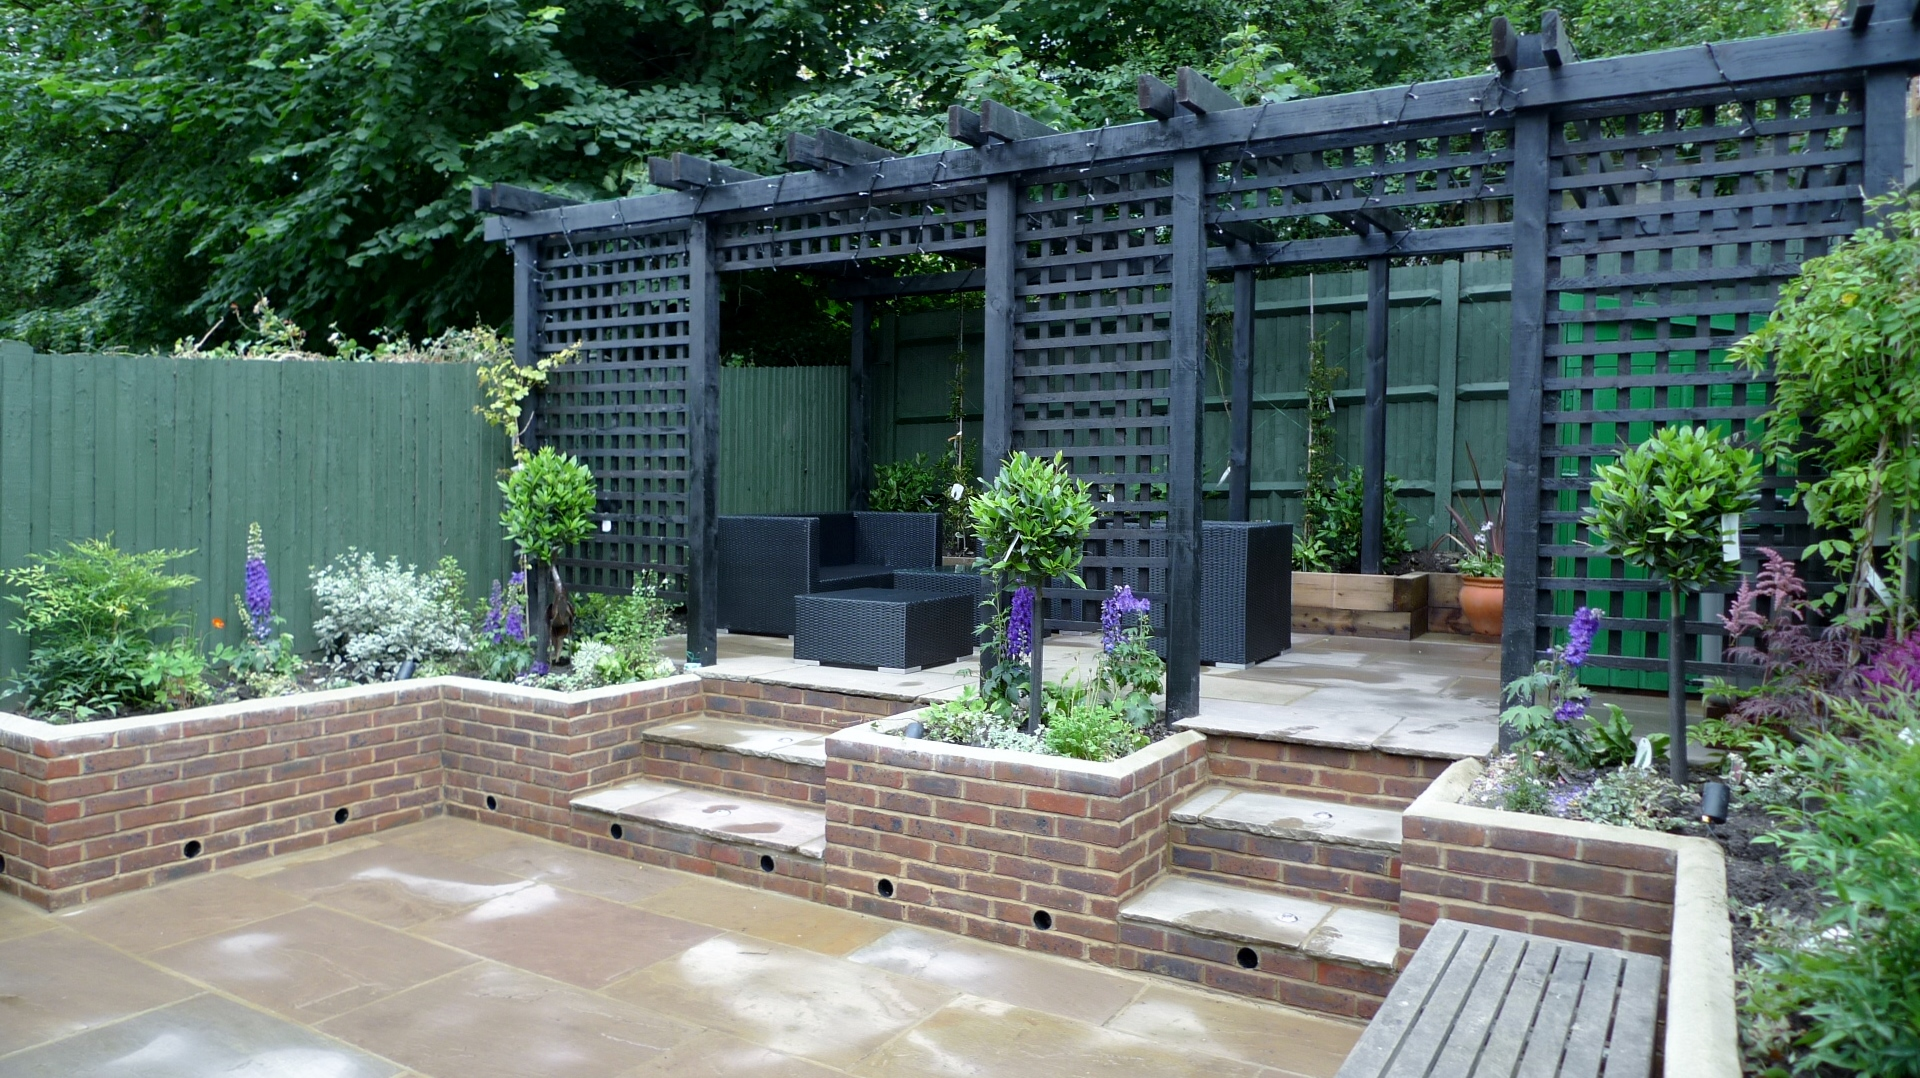 Garden walls pergola paving steps planting design designer ... on Backyard Wall Design id=99041